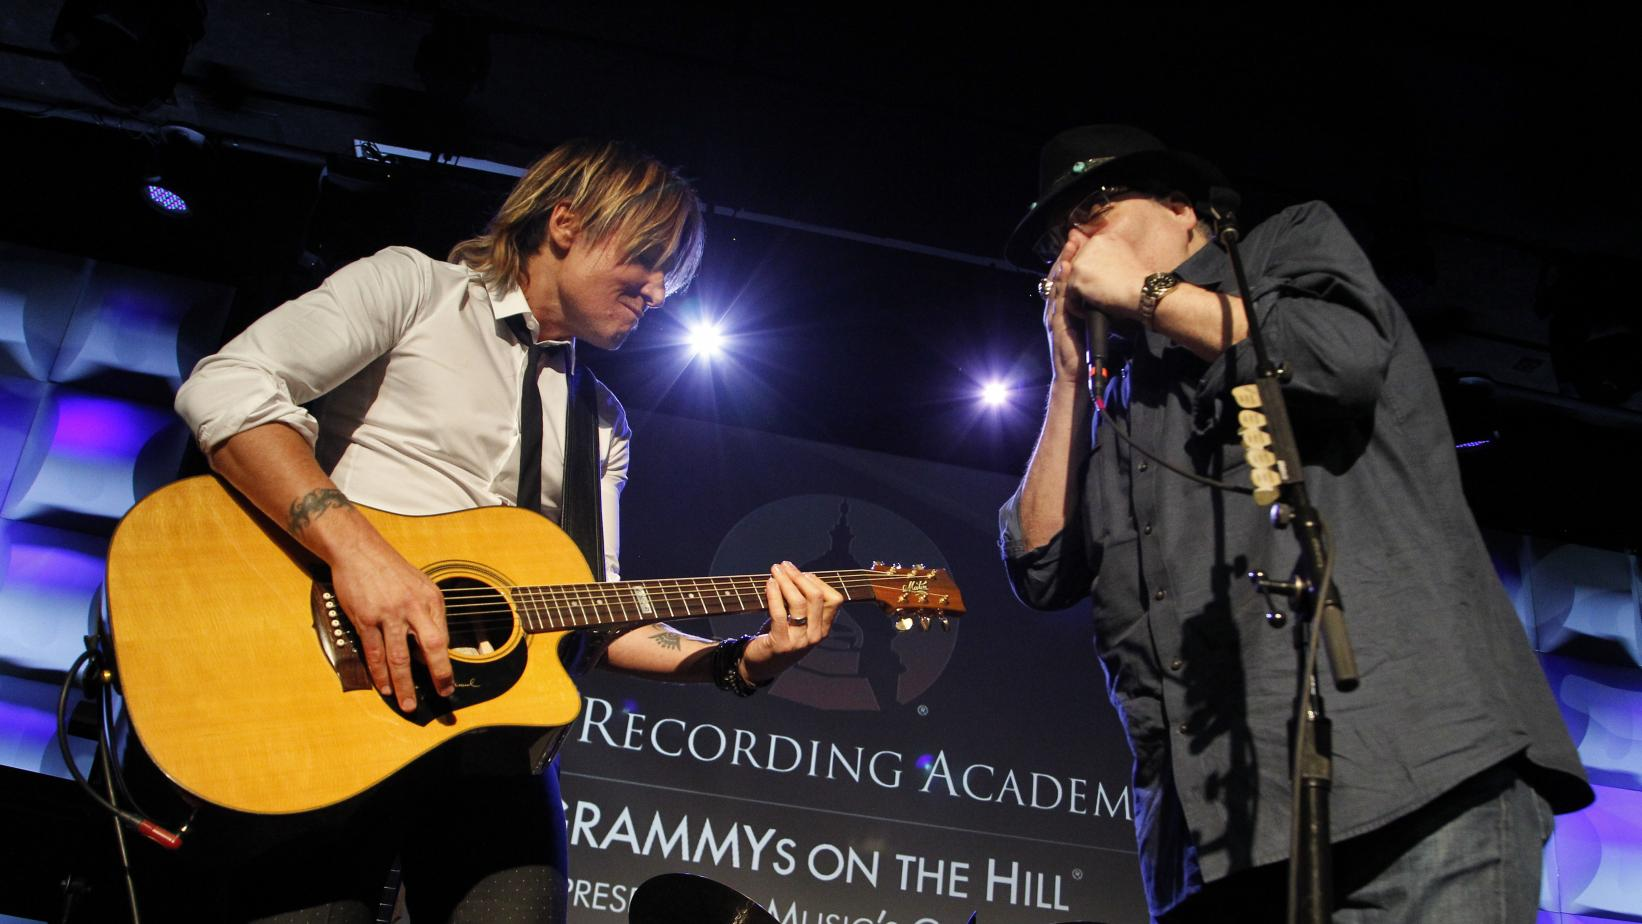 Keith Urban, John Popper perform at GRAMMYs on the Hill